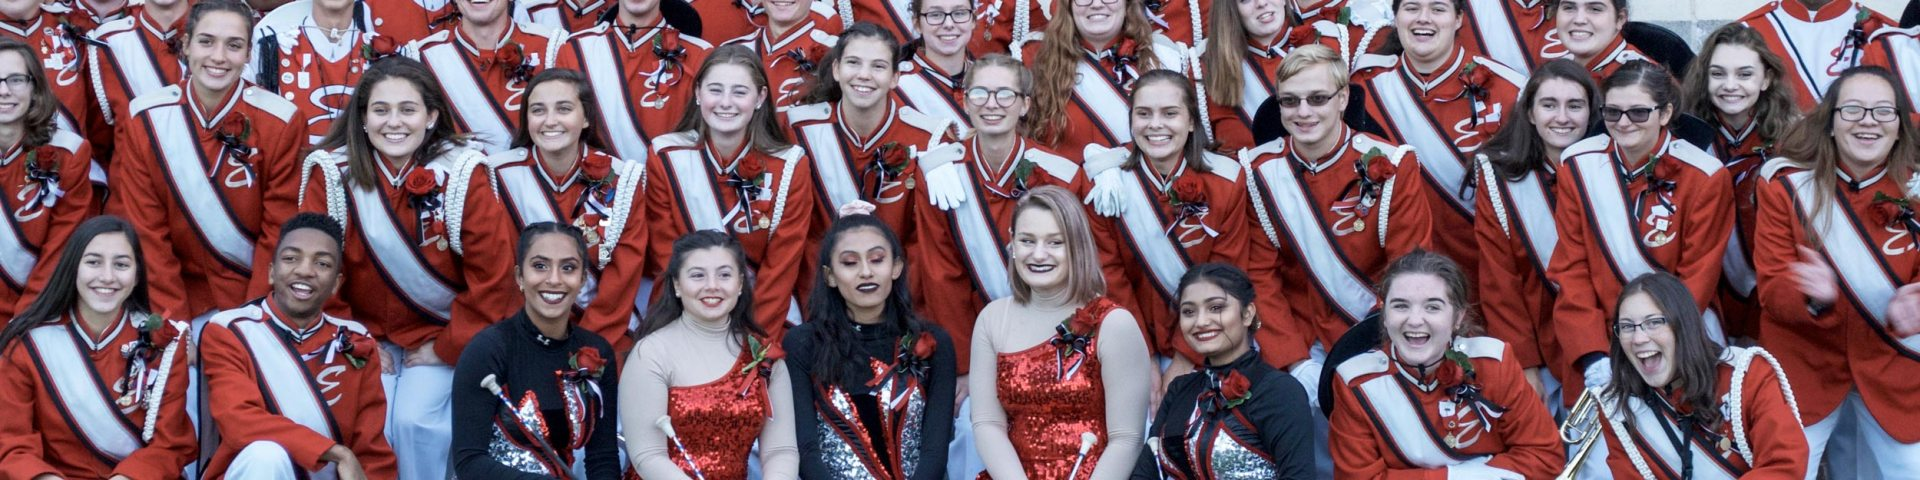 Easton Band Members Posing in Front of a Brick Wall